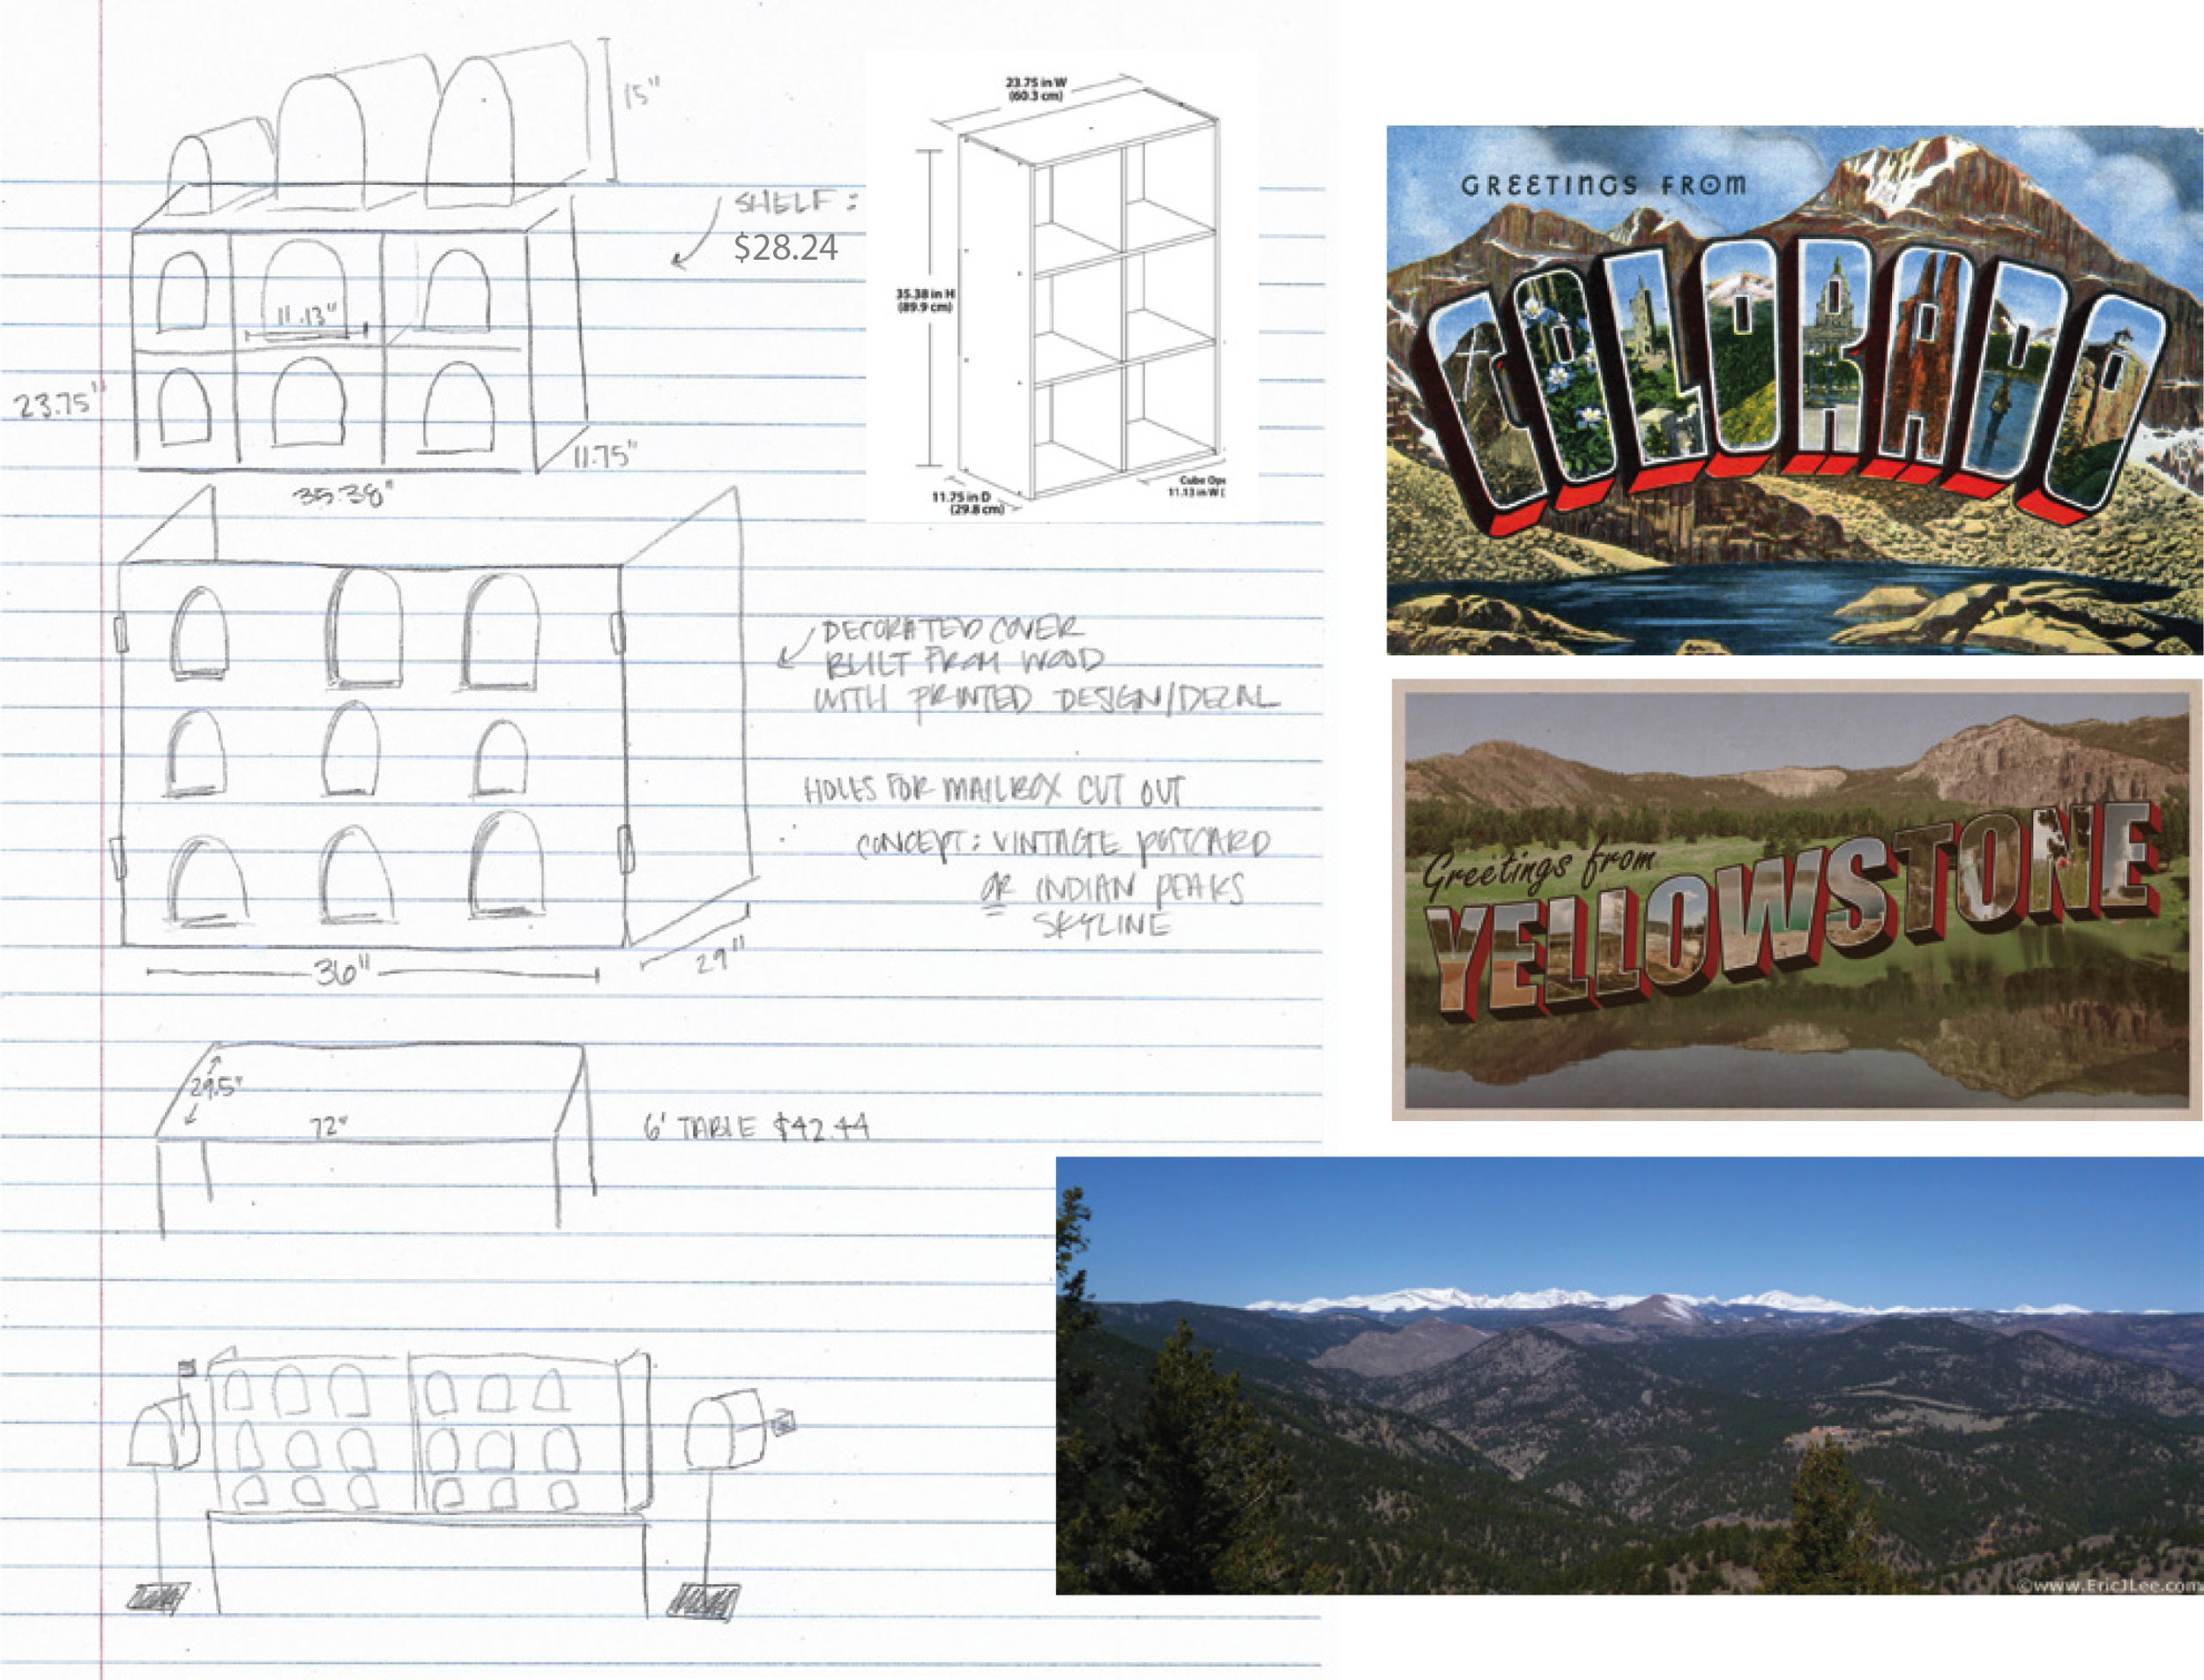 Excerpt from an initial concept sketch of the mailbox structure from which the final design was iterated.